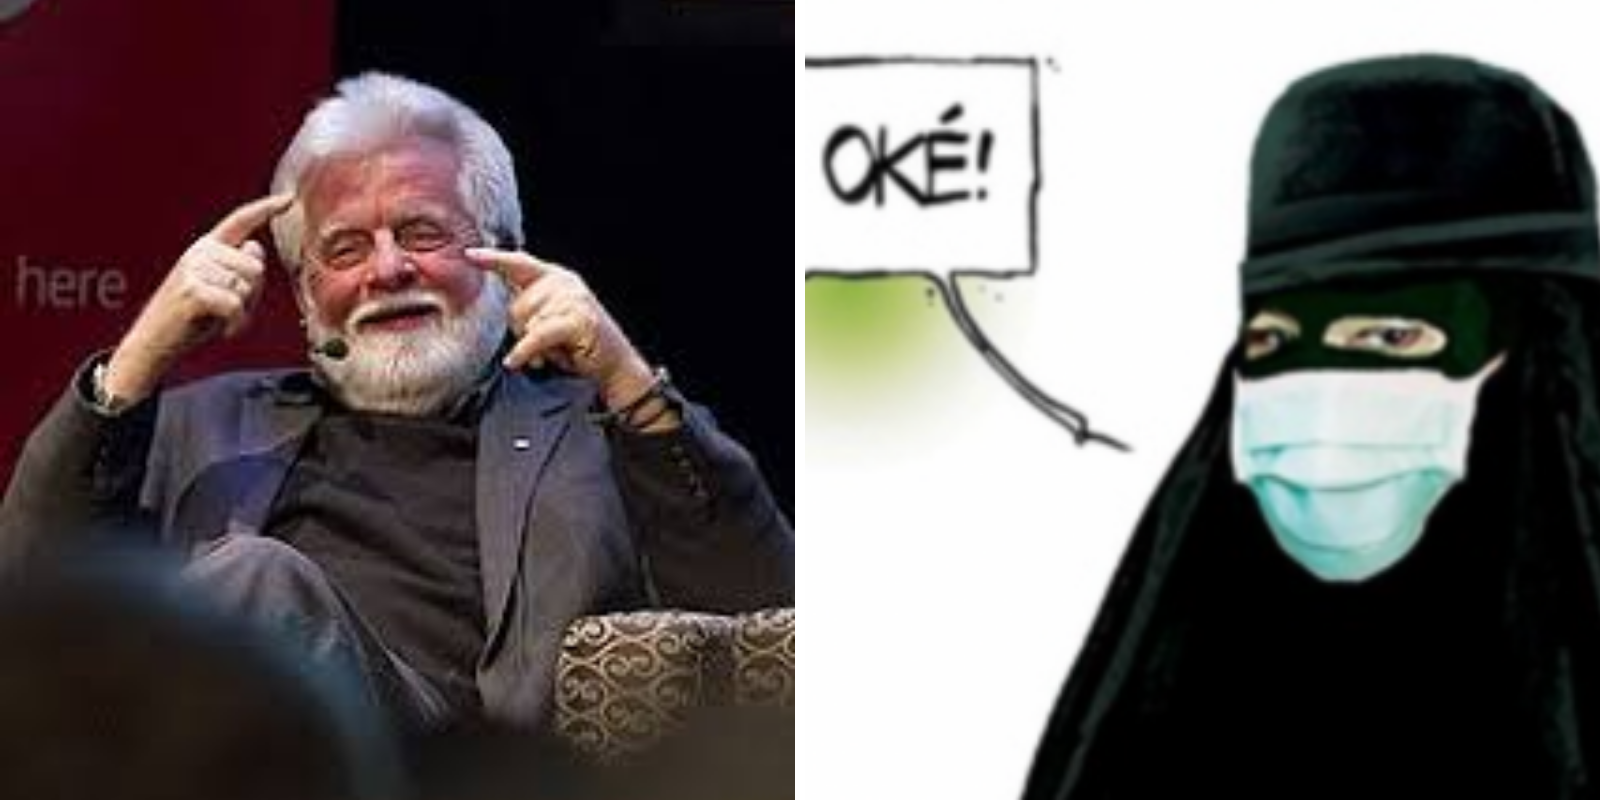 Terry Mosher's face mask/niqab cartoon misses the mark